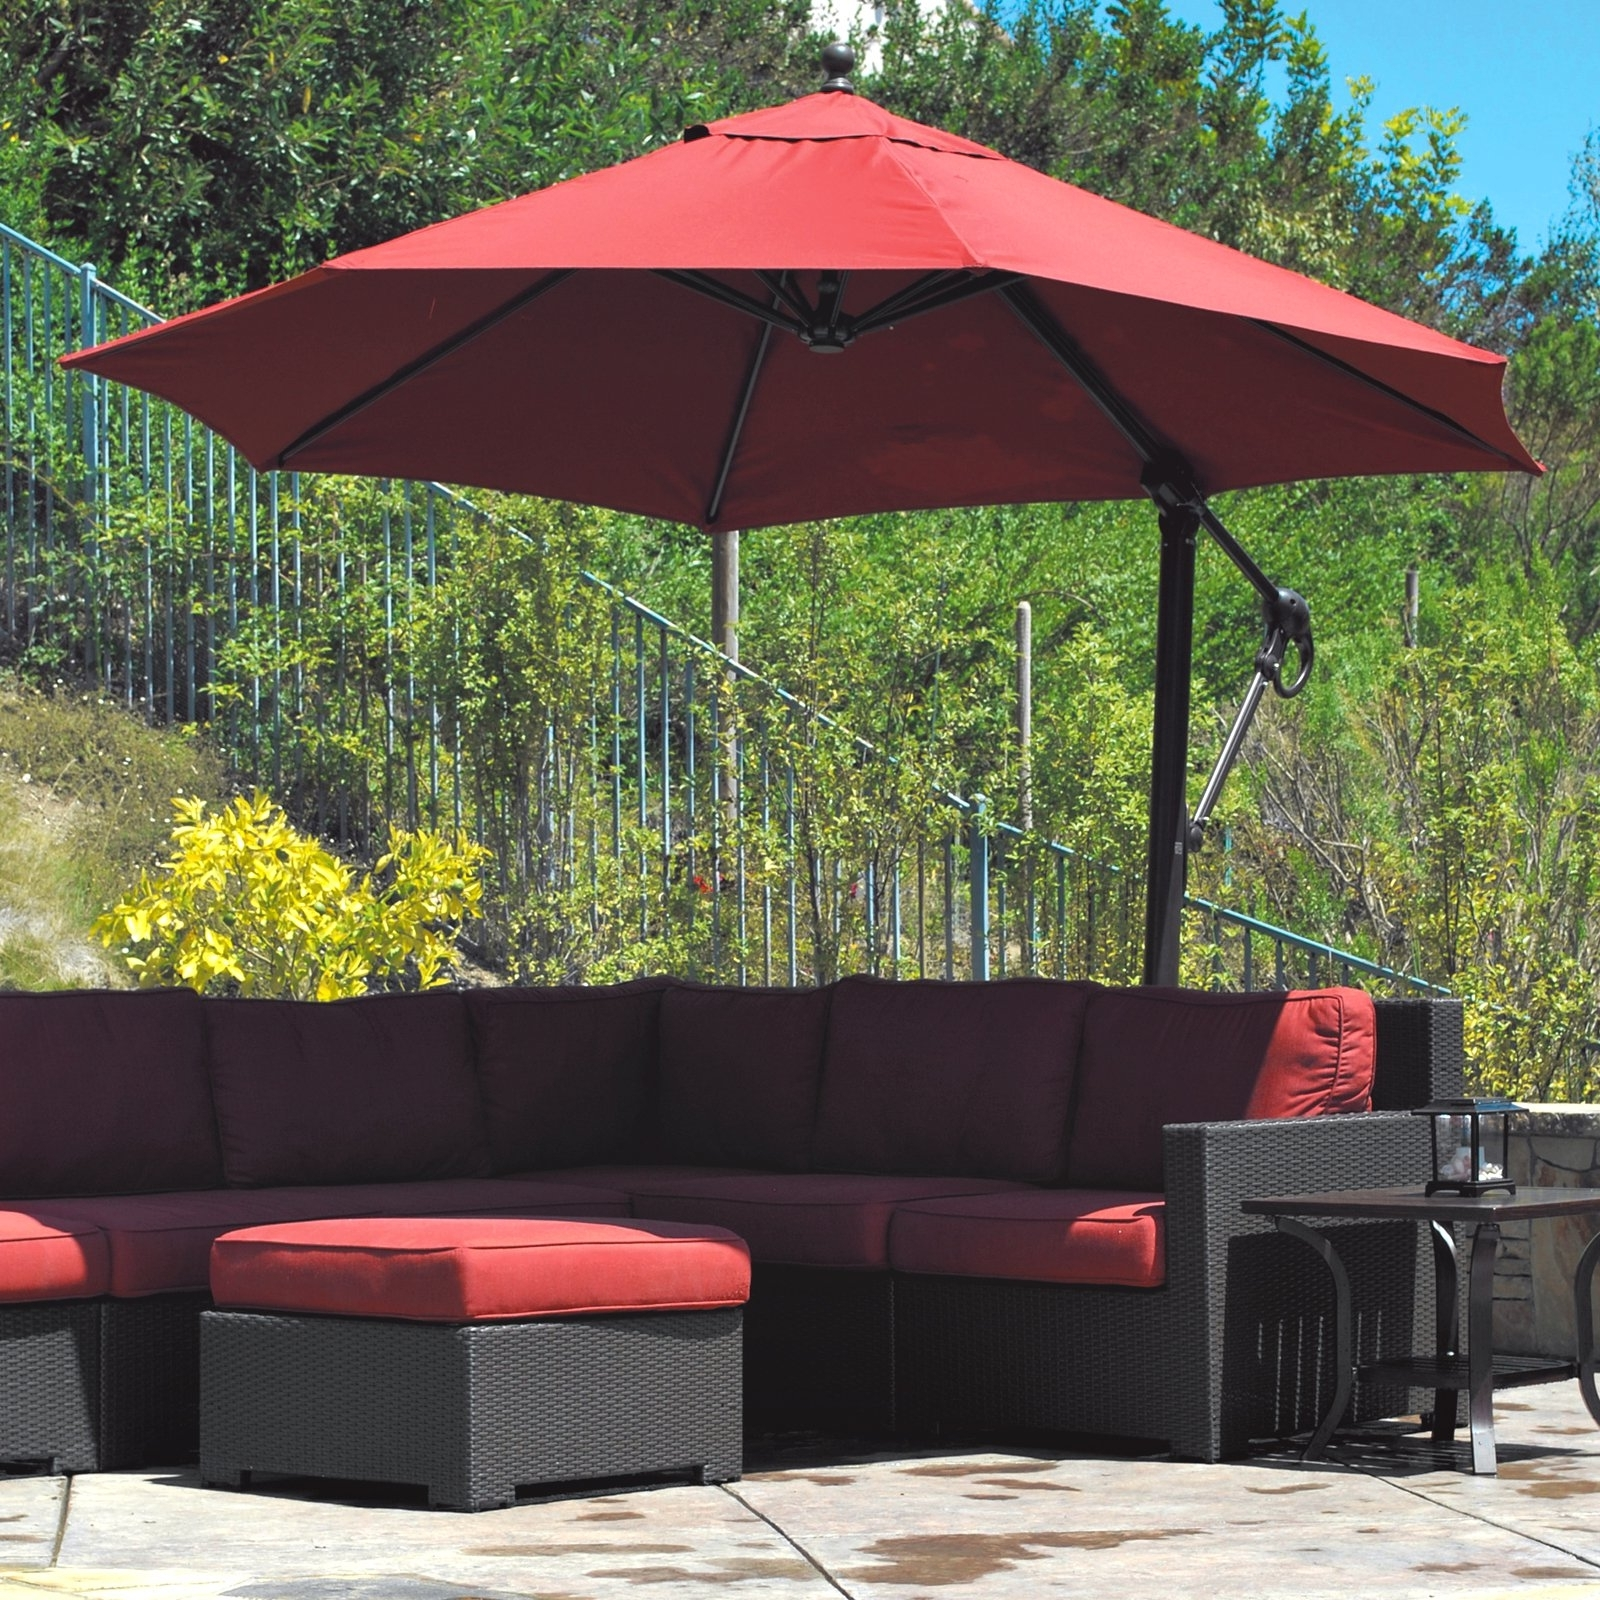 Most Up To Date Offset Patio Umbrella For Shade From Sun – Decorifusta Inside Large Patio Umbrellas (View 7 of 20)